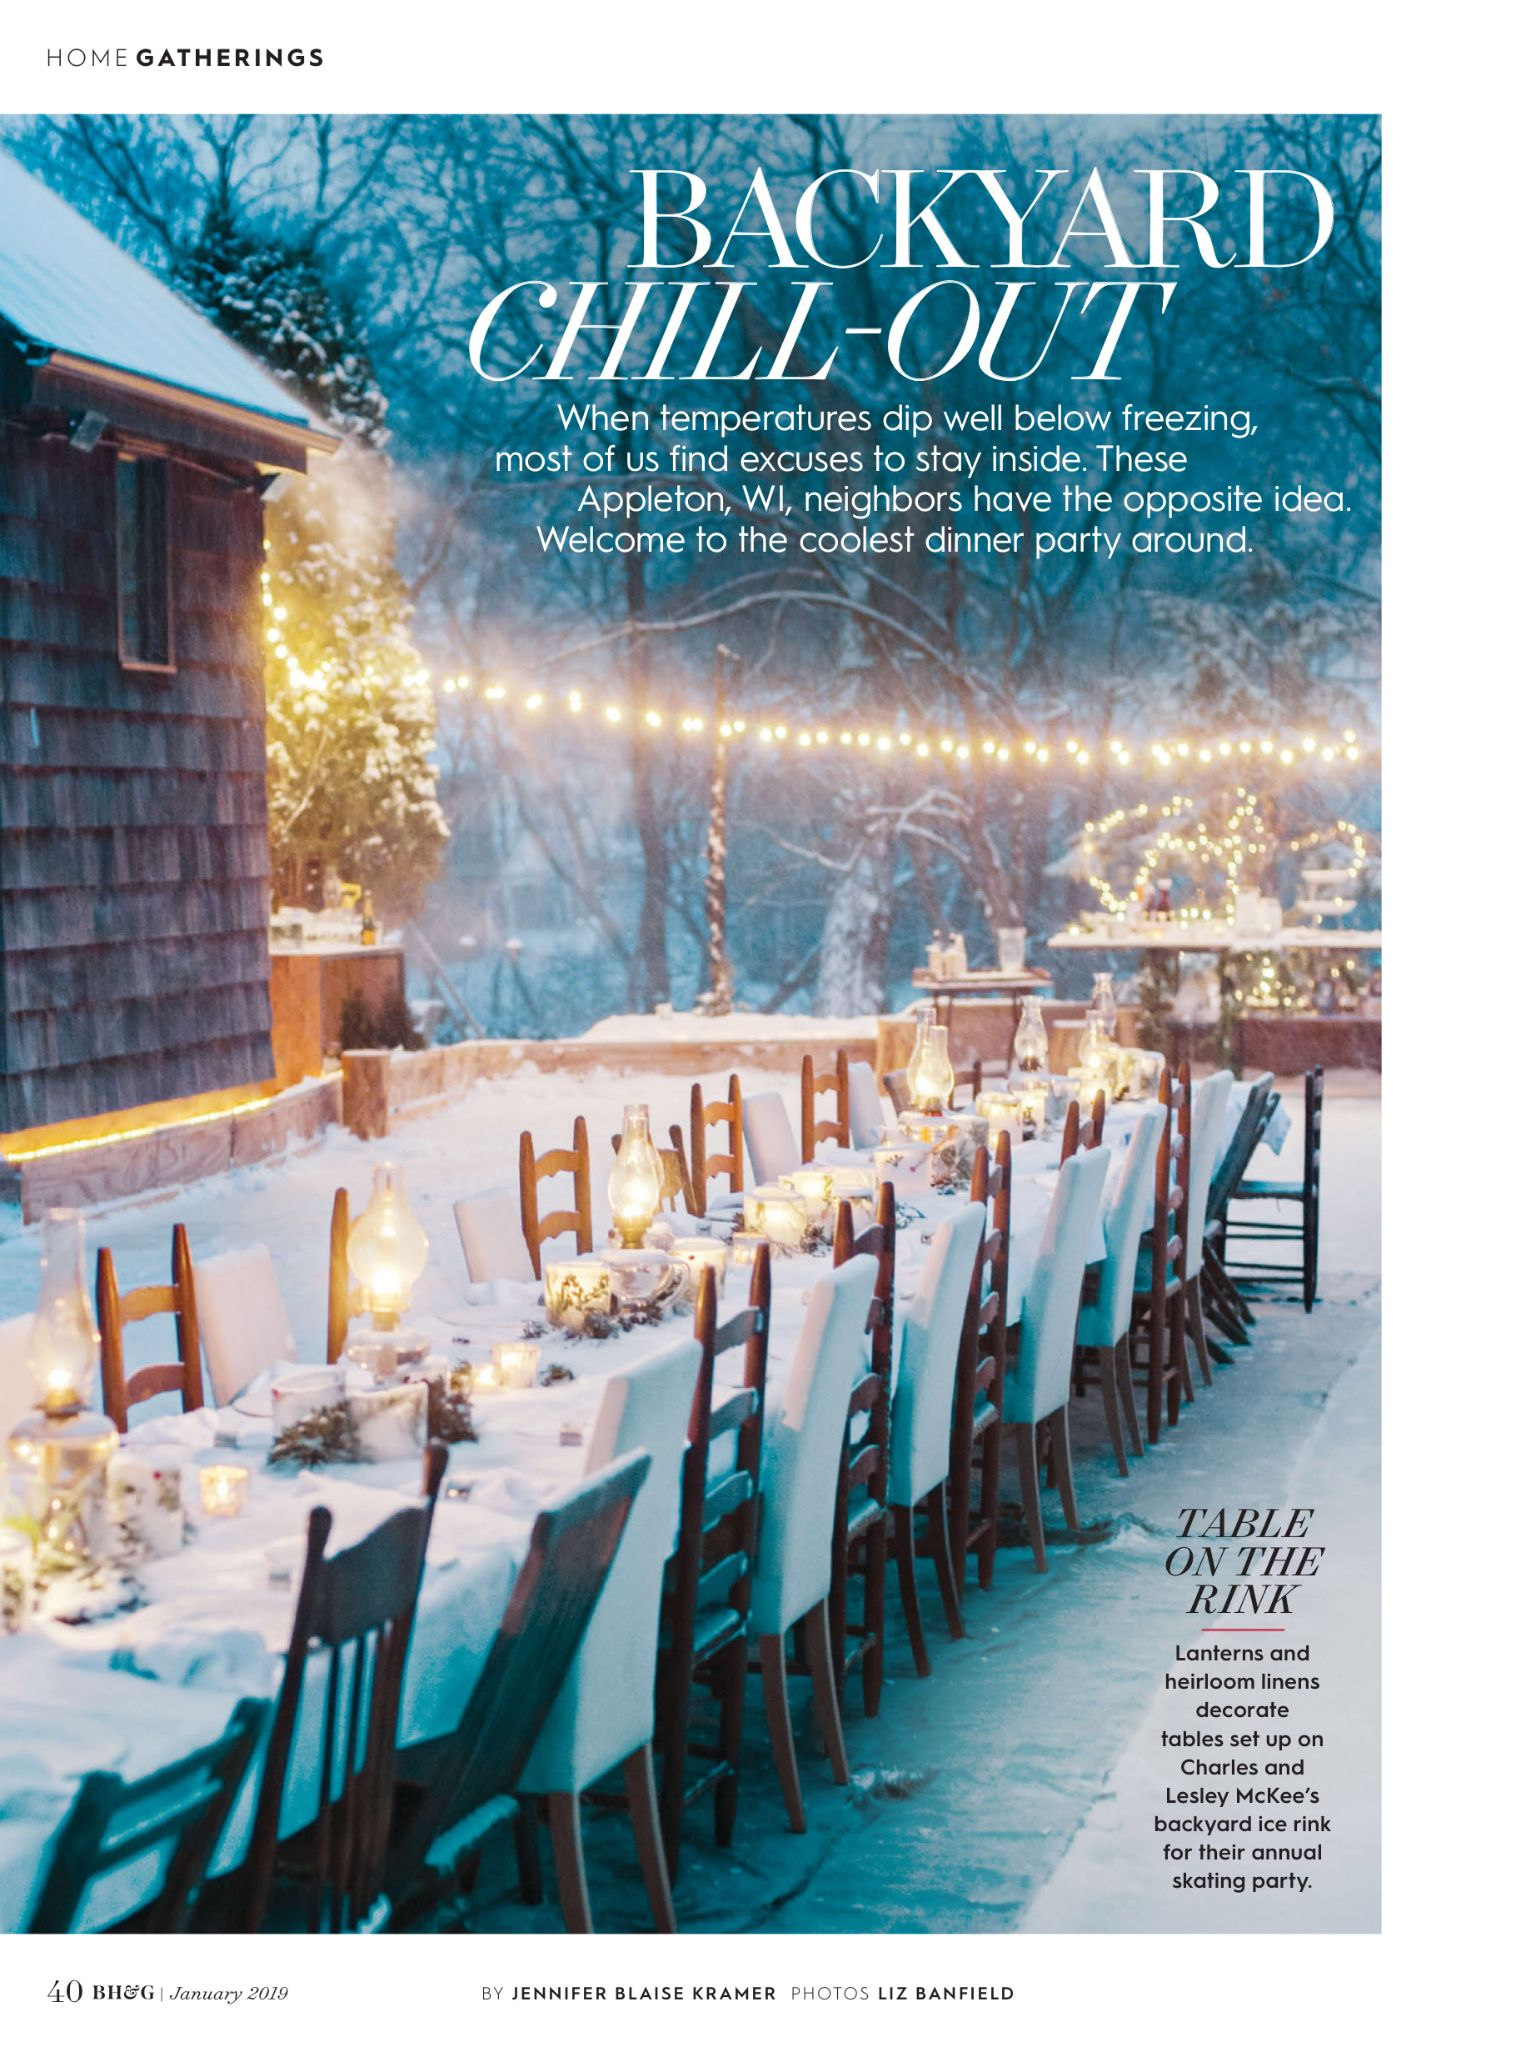 9f65d9608fe92358fd007508d39a3869 - Better Homes And Gardens January 2017